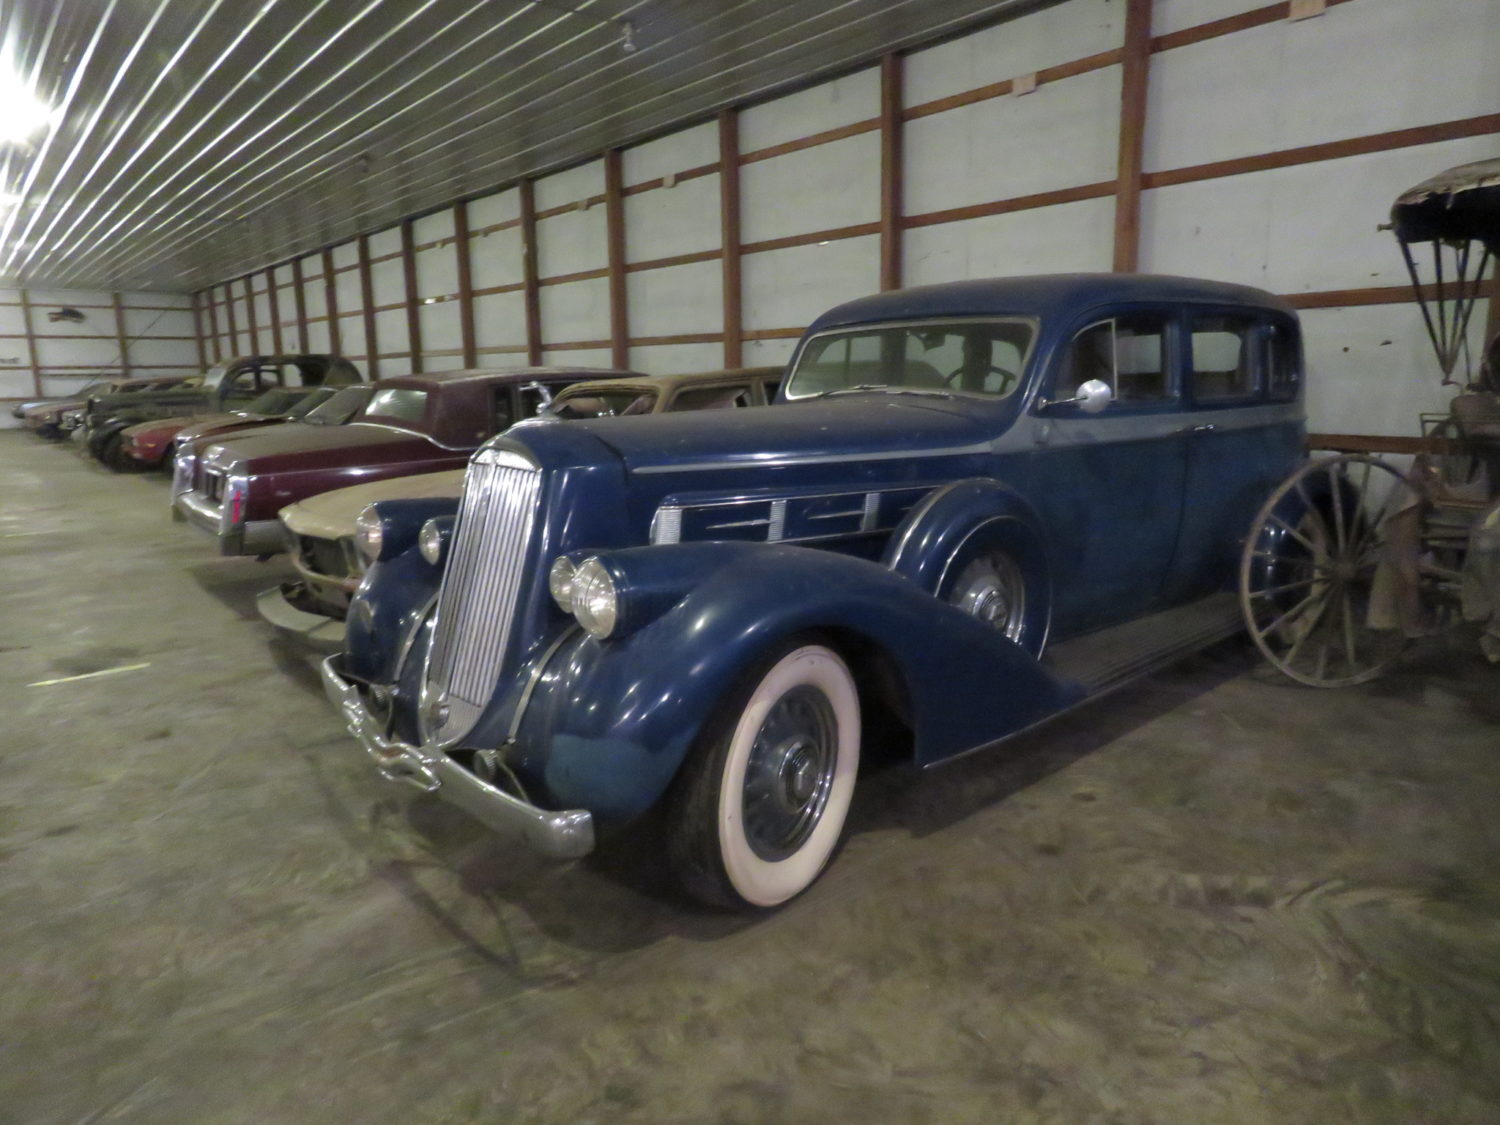 Amazing Vintage Motorcycles, Race Cars, Collector Cars & Parts! The JAB Collection - image 5